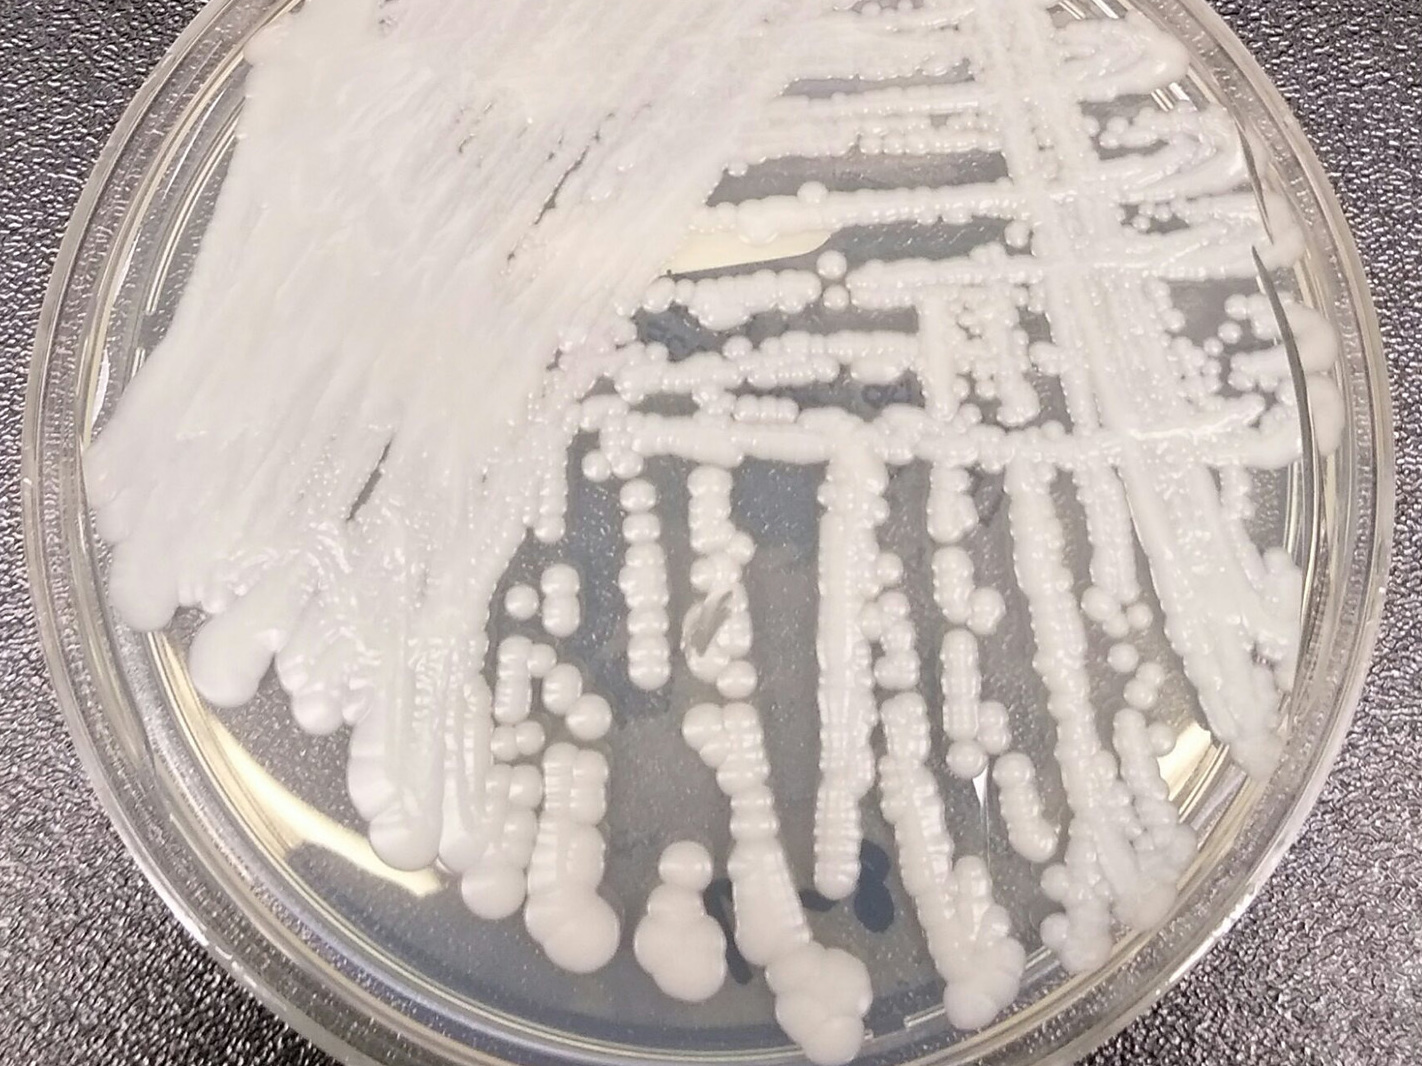 First Cases Of New, Infectious Fungus Reported In U.S.